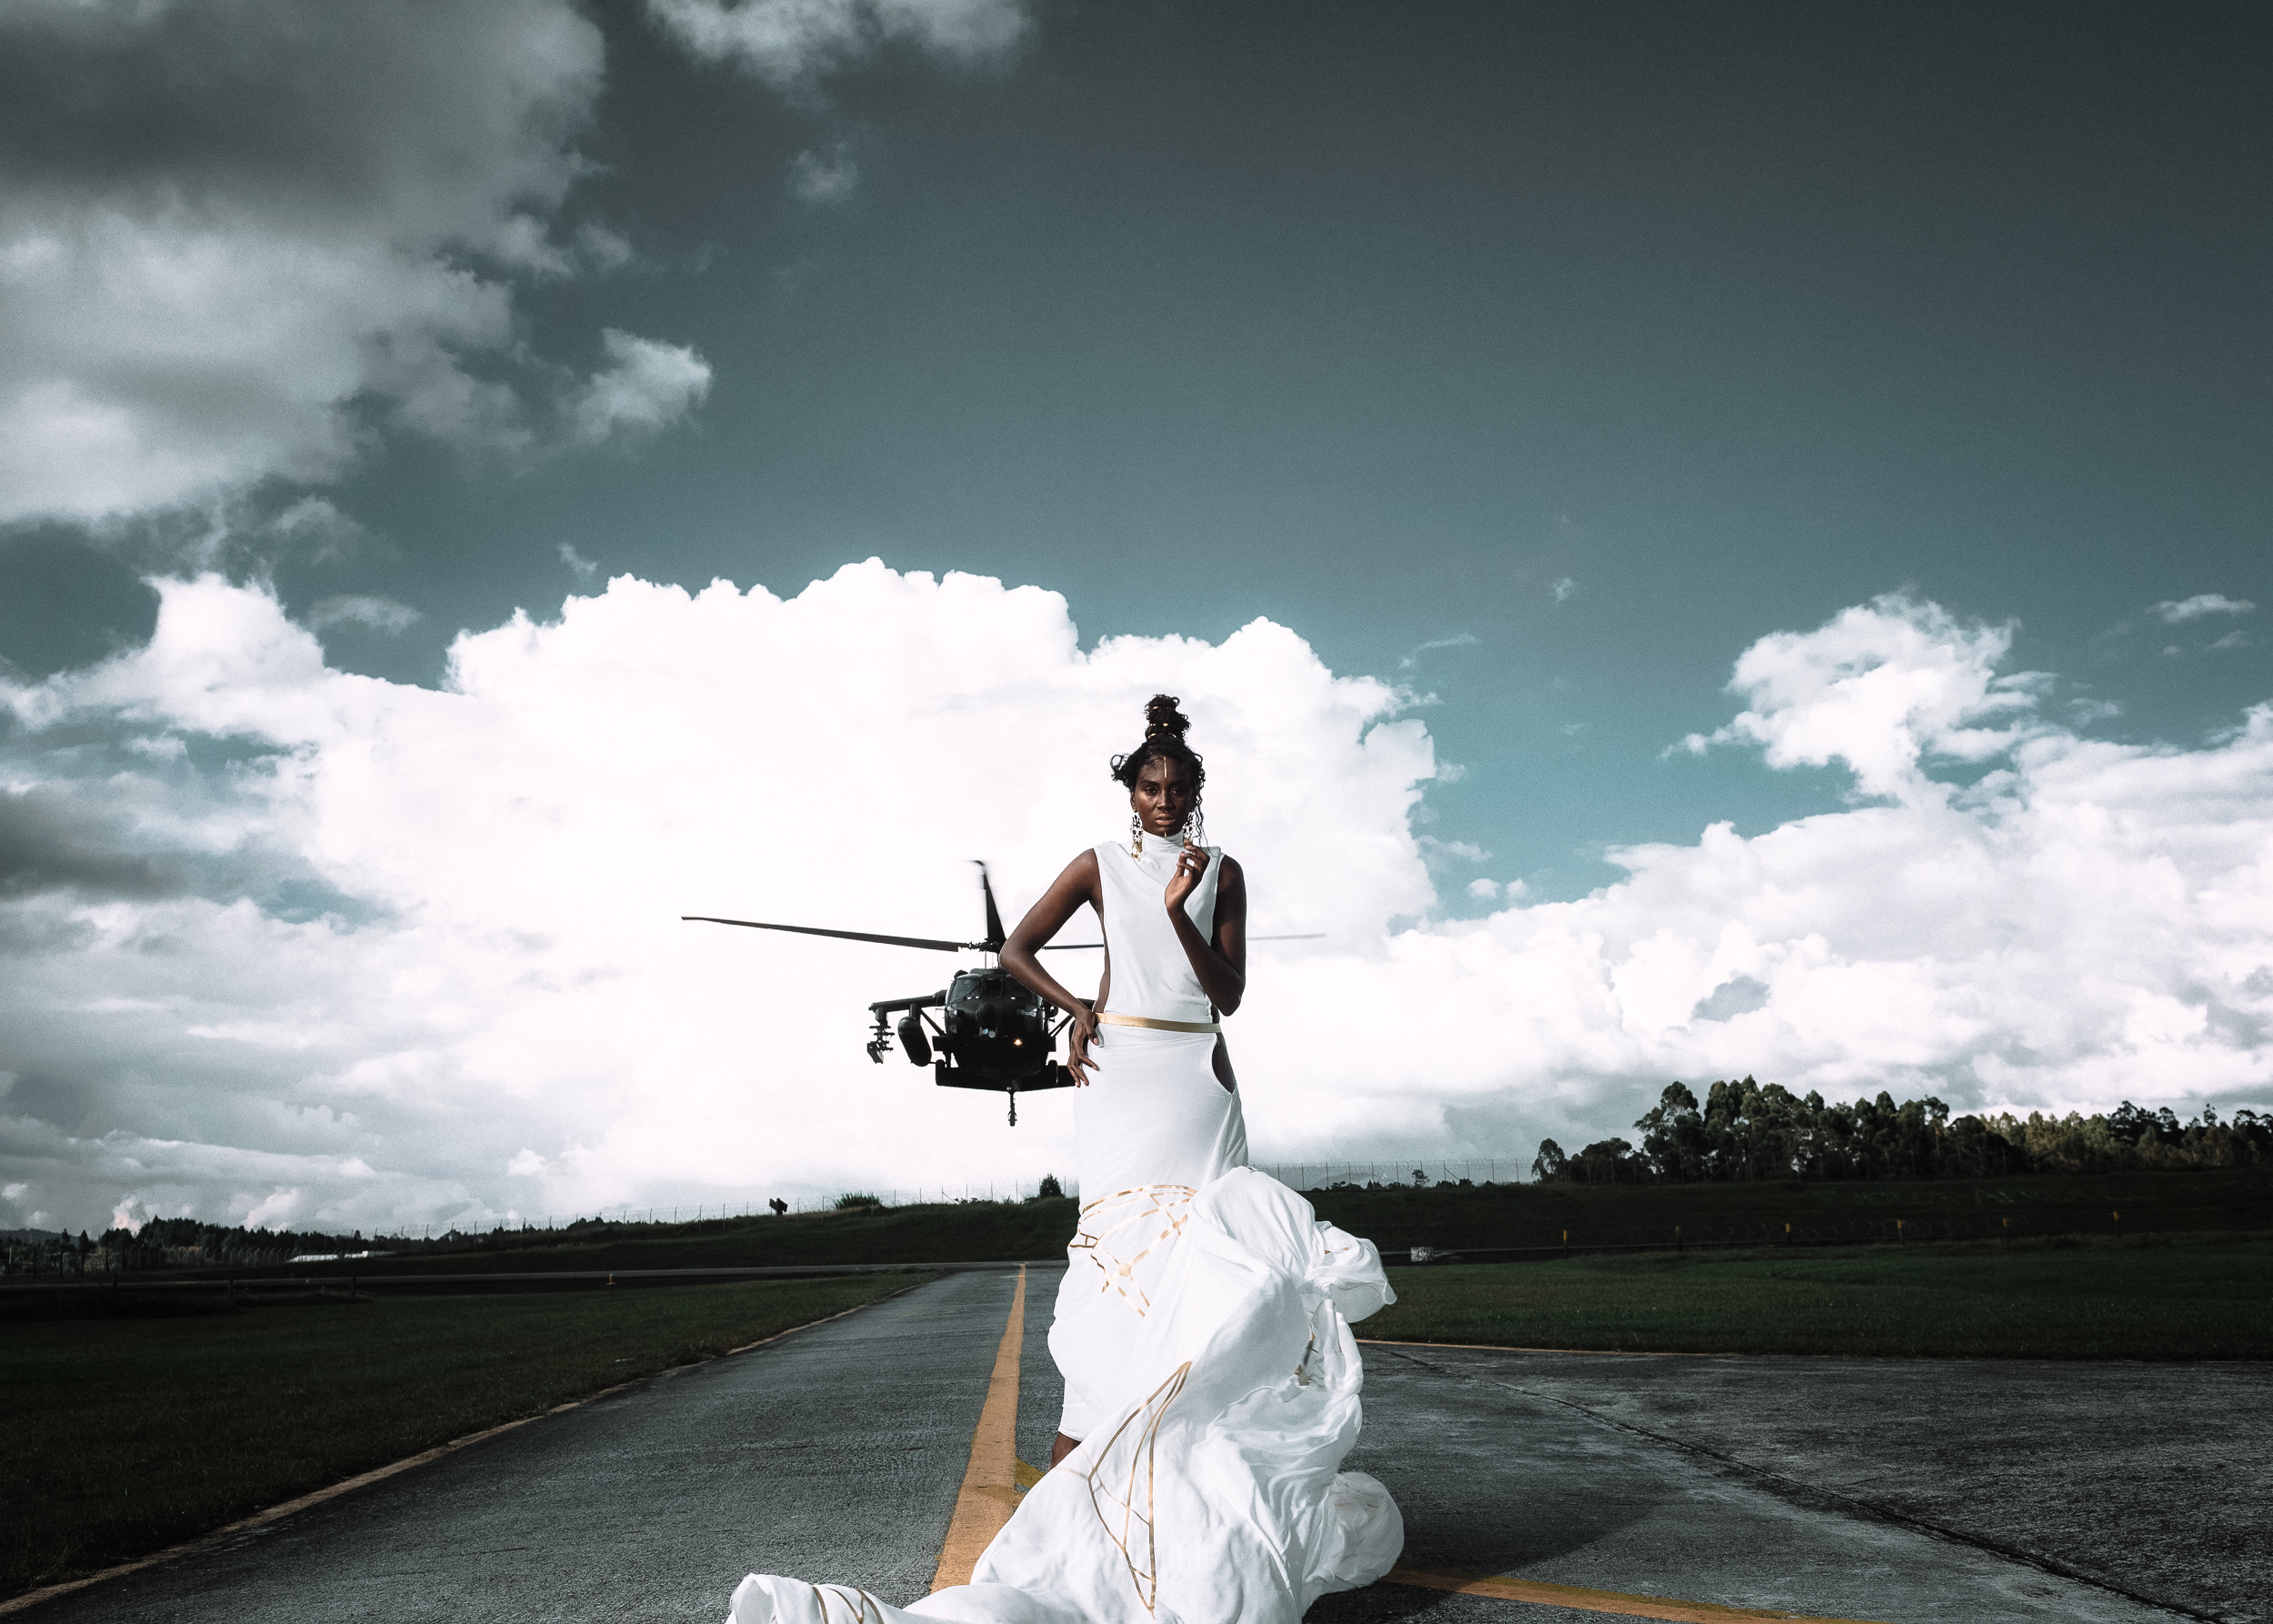 Fashion photoshoot con helicoptero Colombia